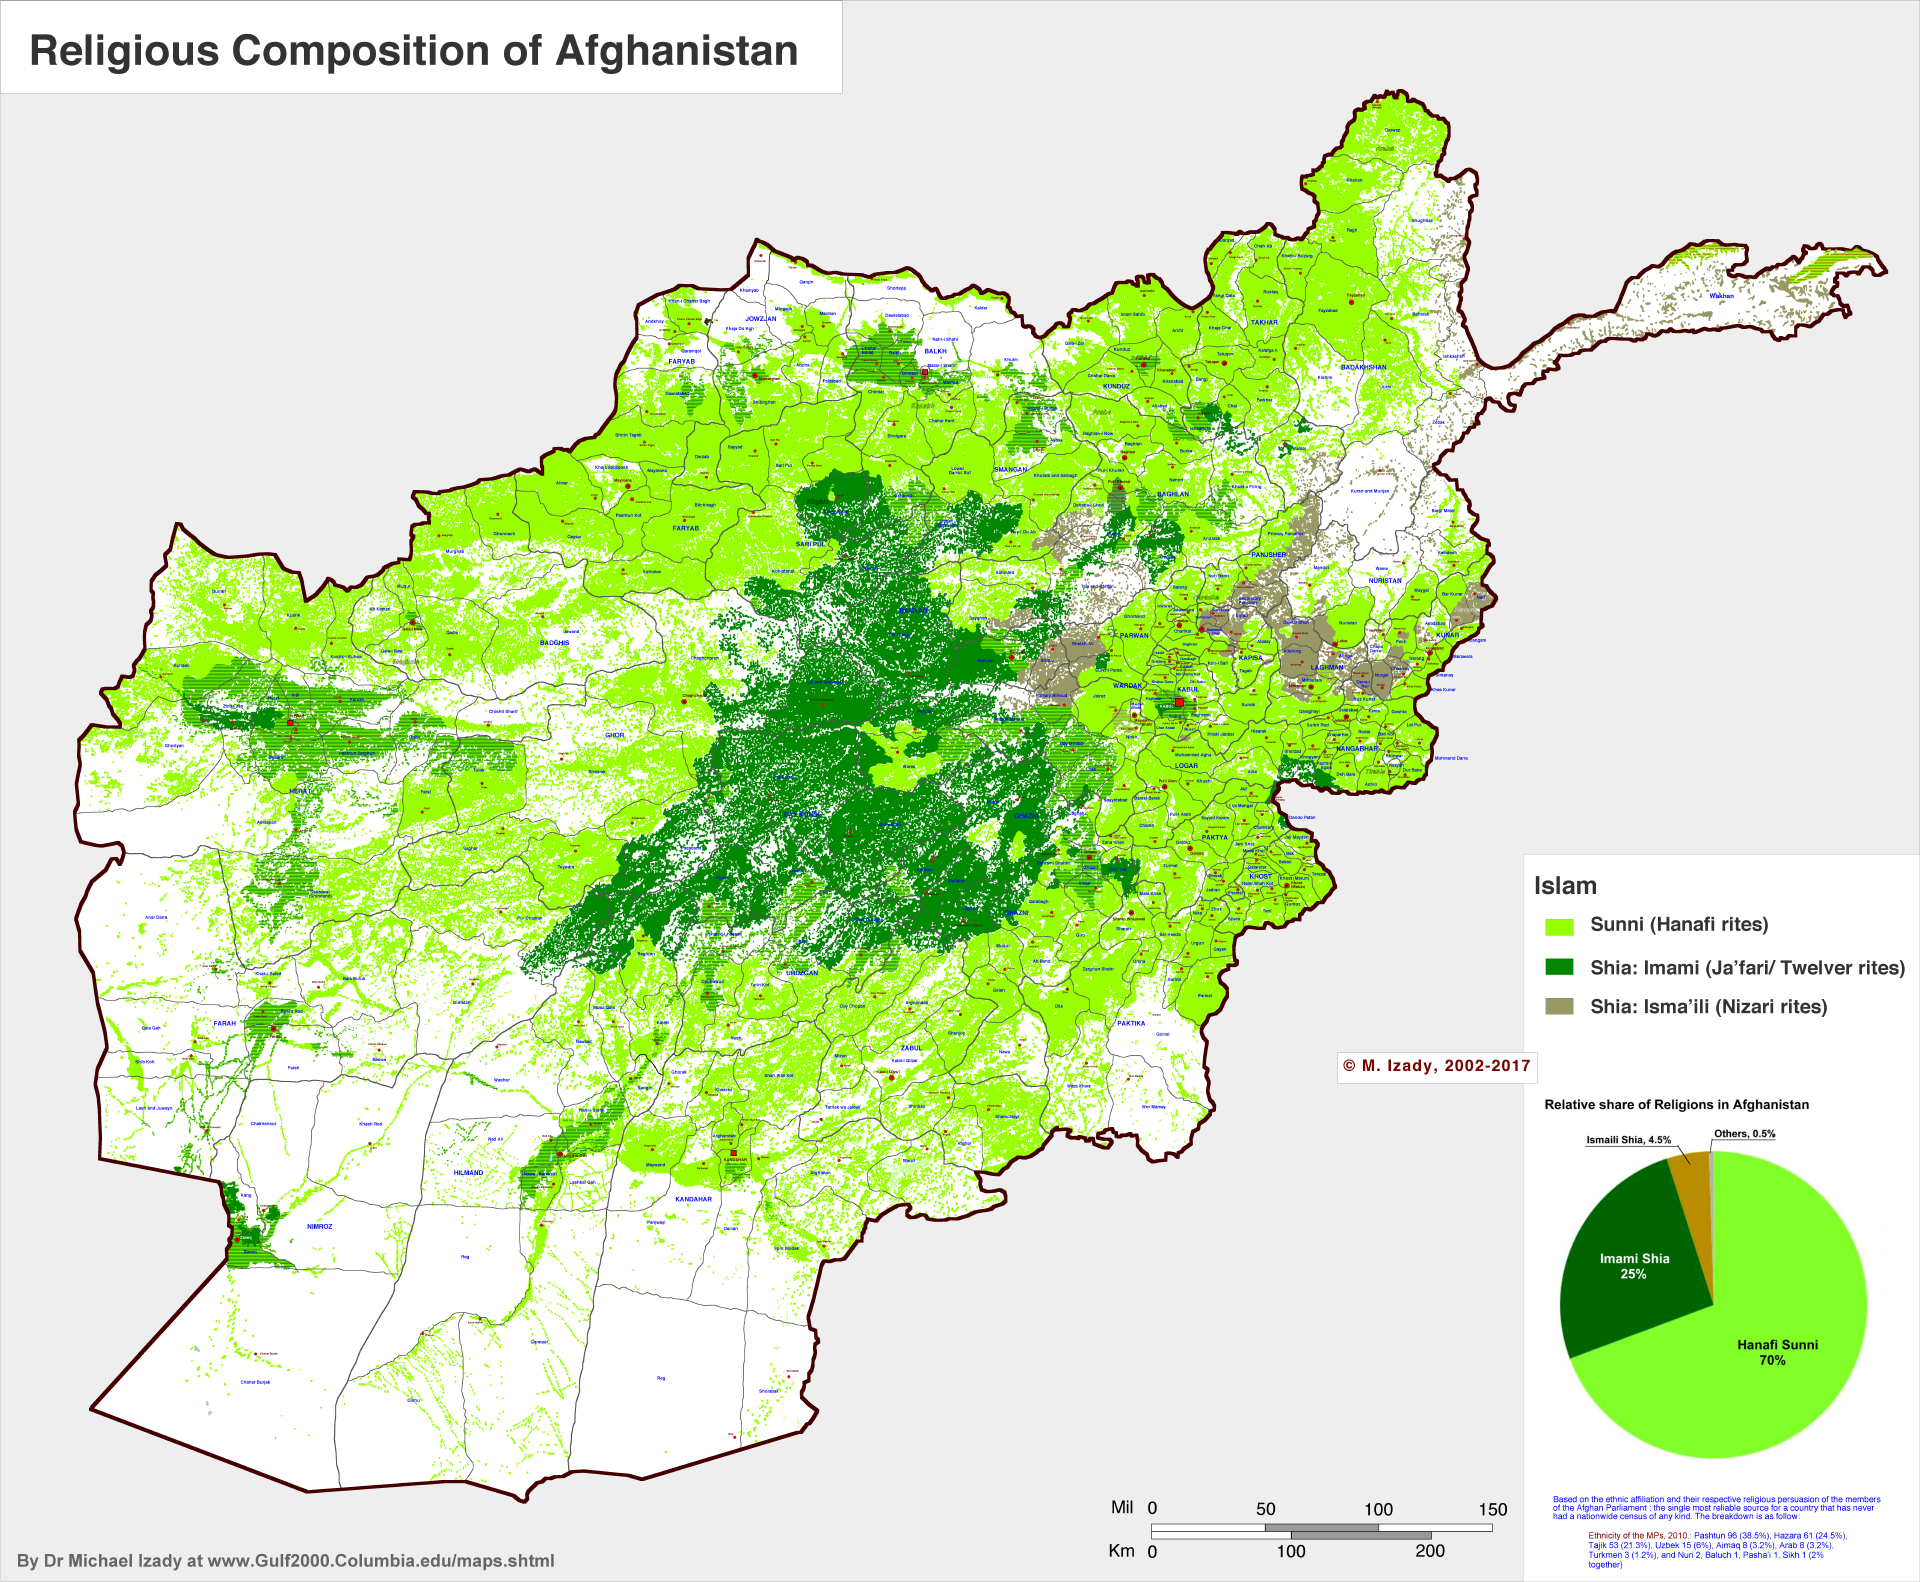 Map showing religious composition of Afghanistan.